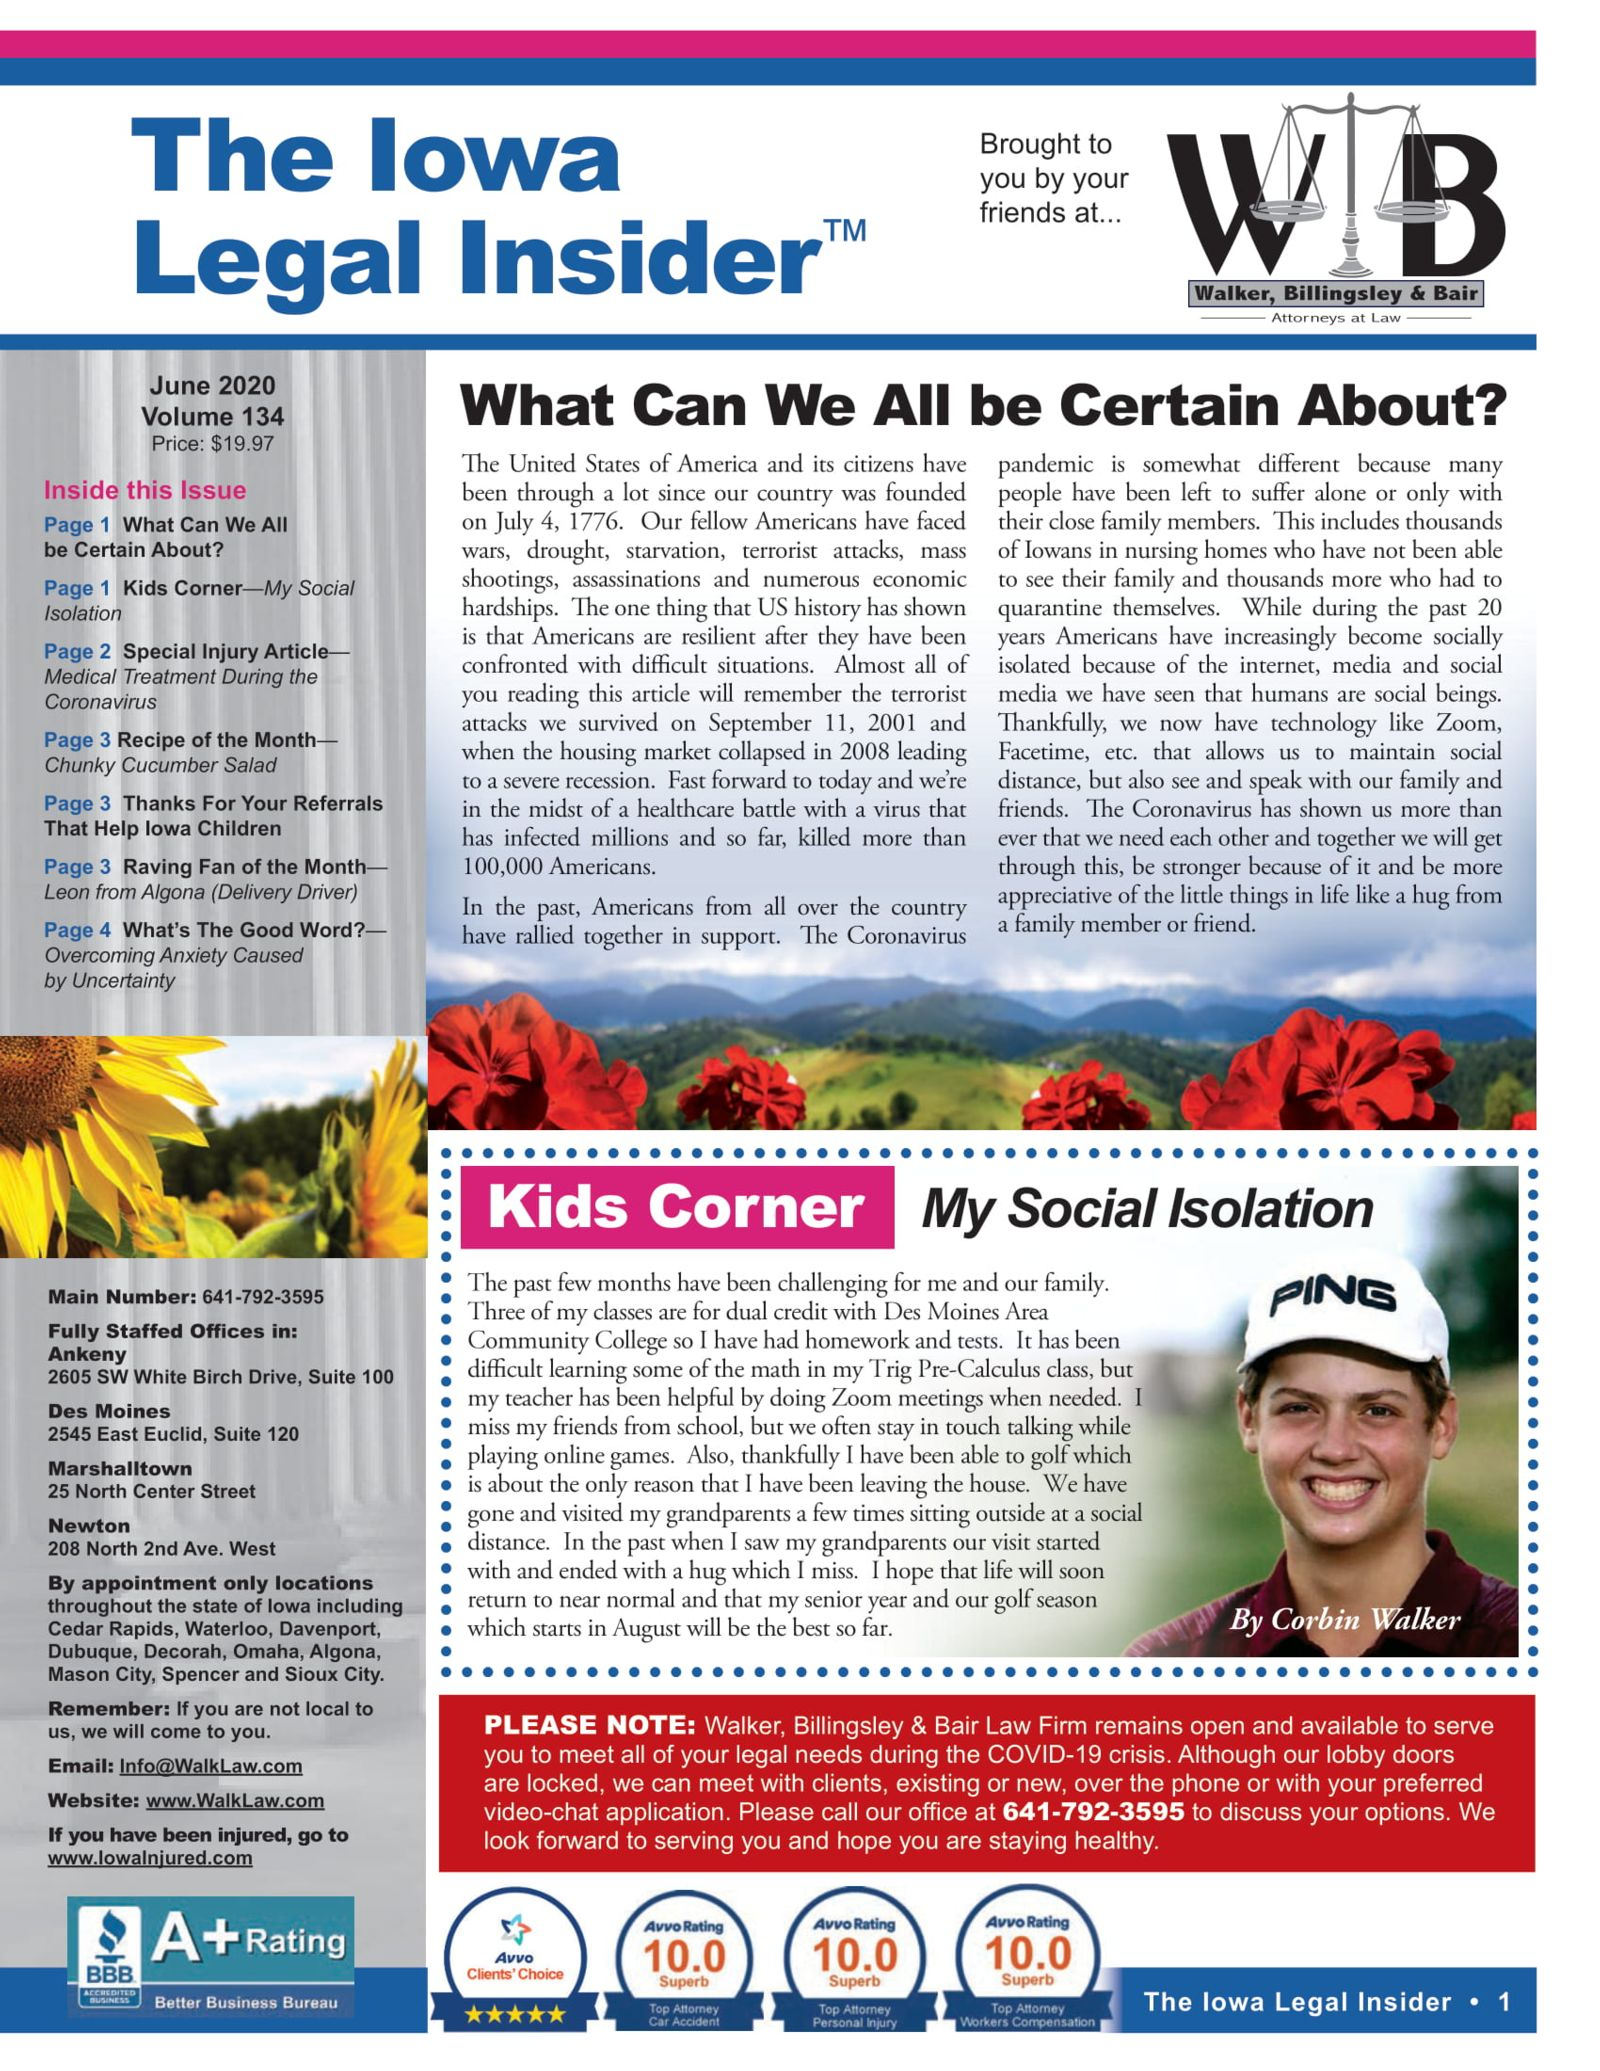 The Iowa Legal Insider